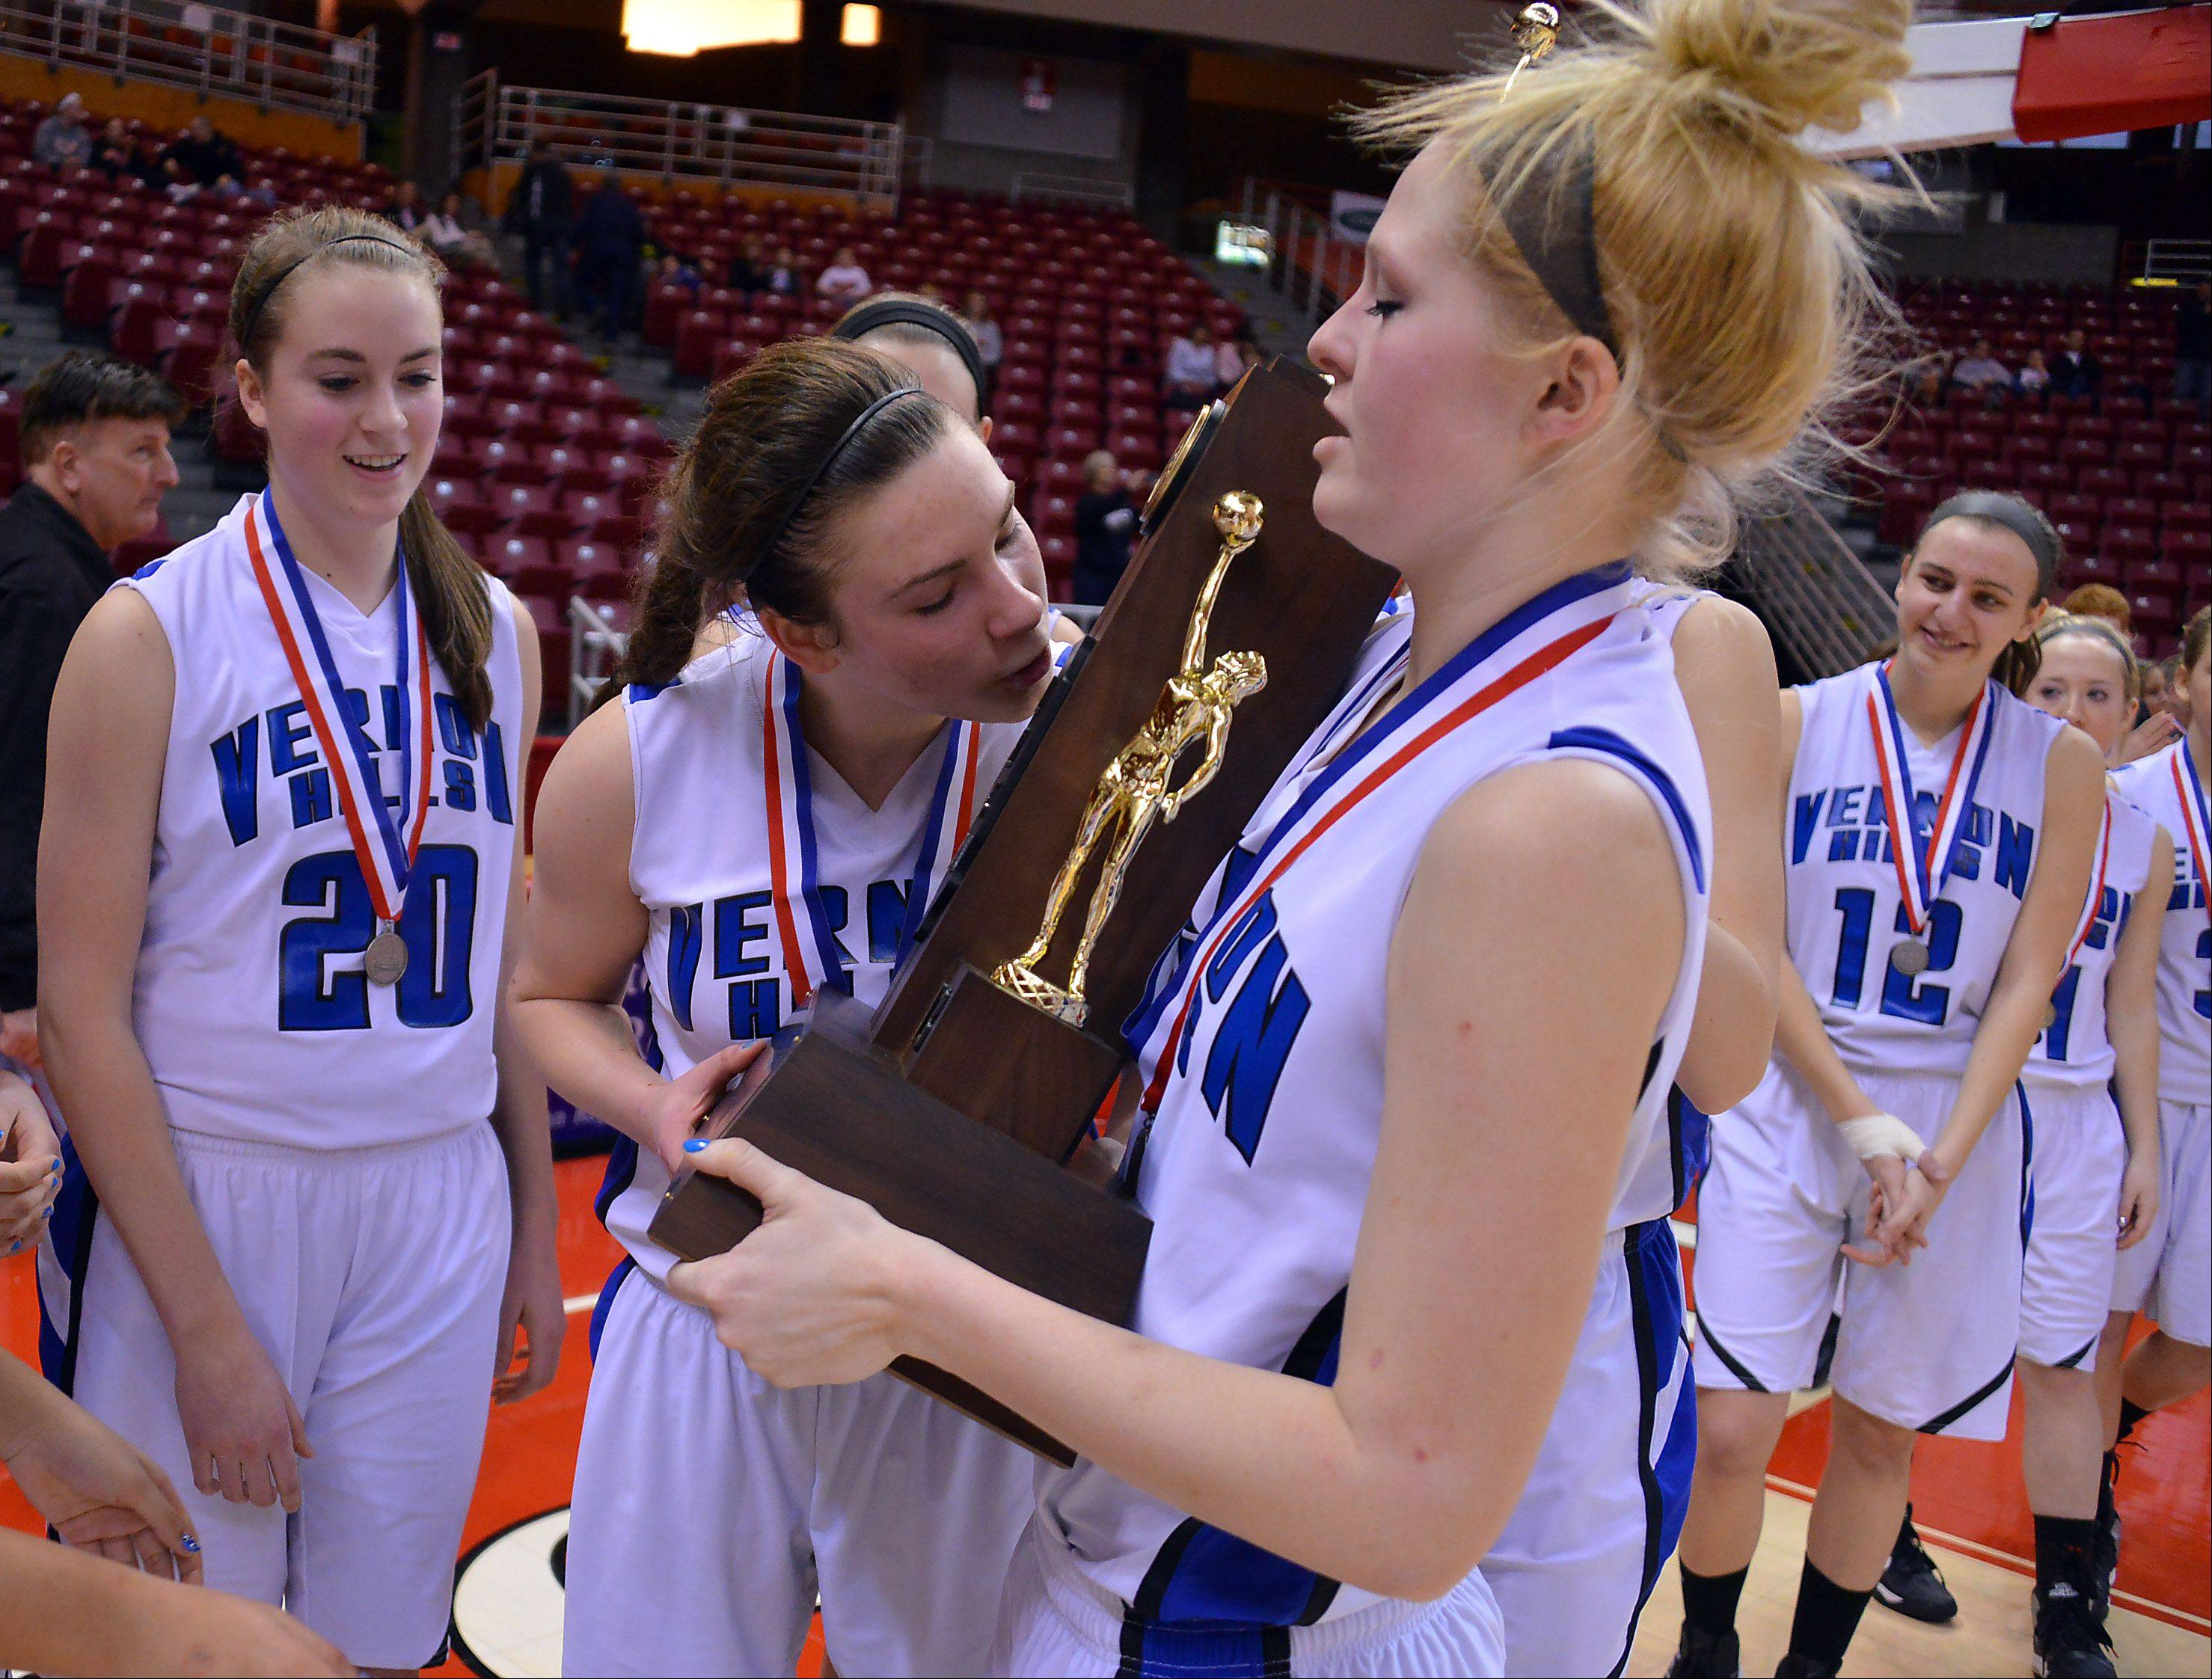 Vernon Hills' Brie Bahlmann kisses the second place trophy as teammate Sydney Smith holds it after they lost to Quincy Notre Dame Notre Dame in the Class 3A state girls basketball in Normal on Saturday.